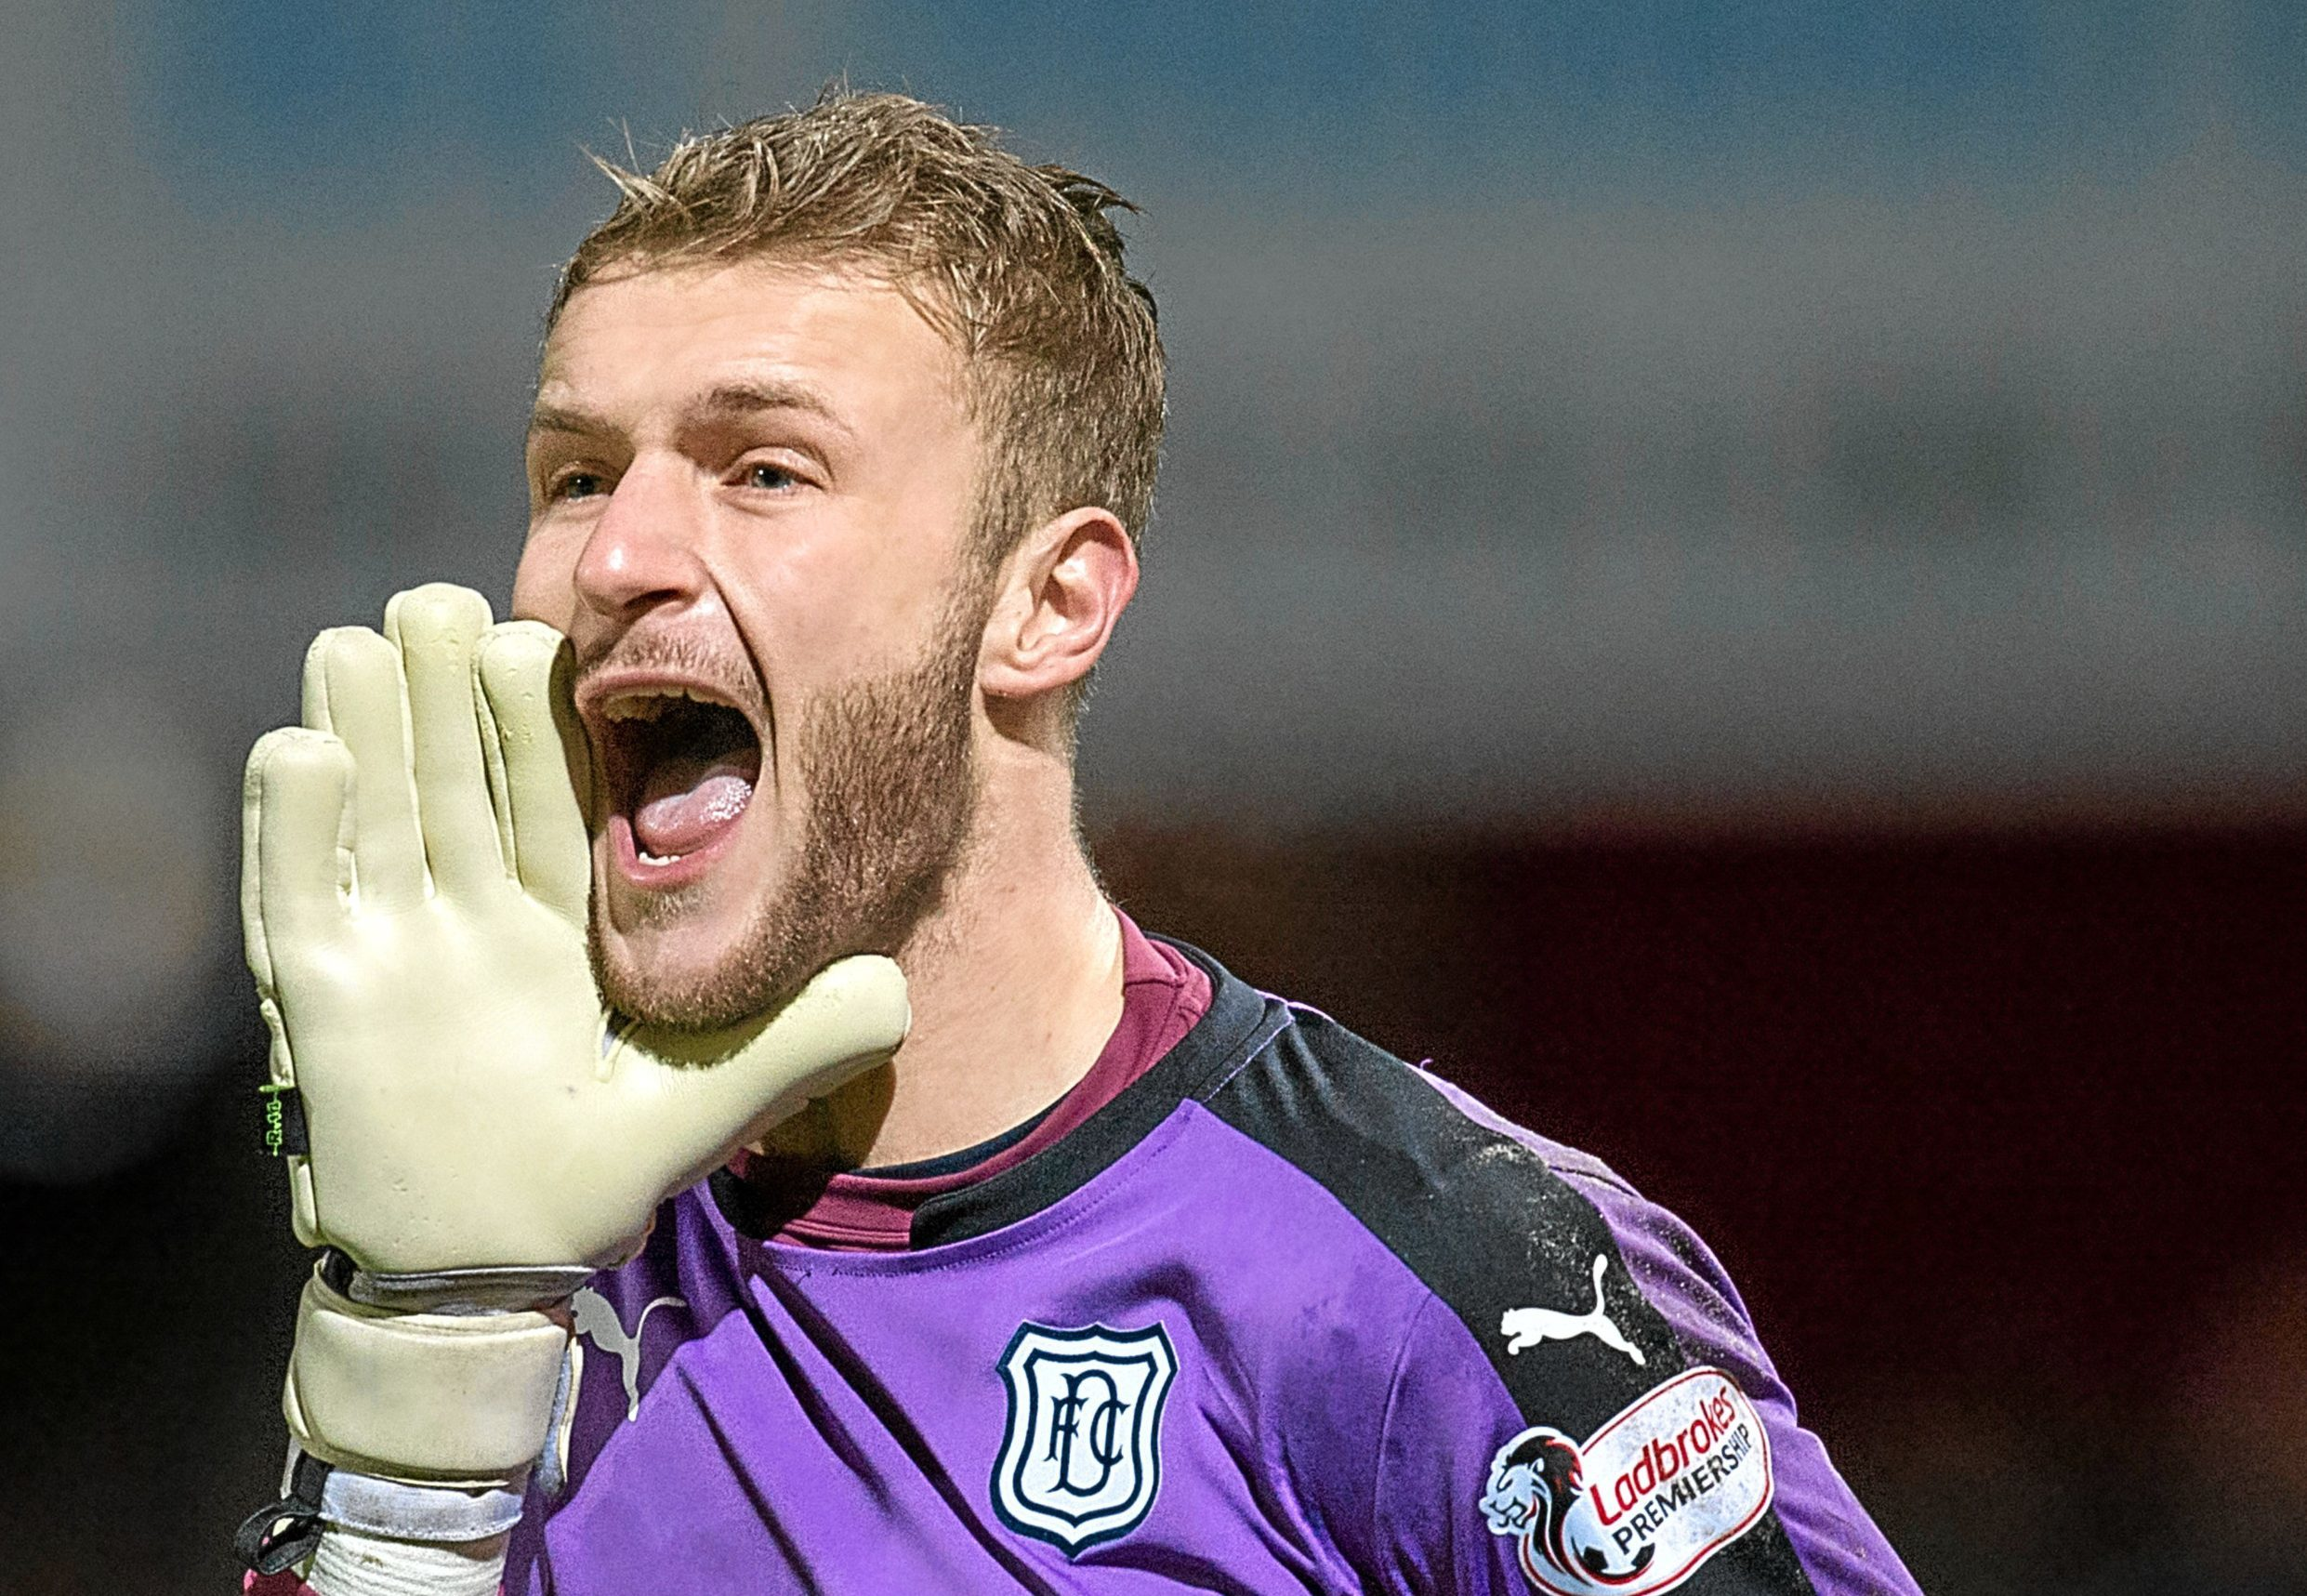 Dundee shot-stopper Scott Bain will be shouting for Hibs in the Scottish Cup Final against Rangers.